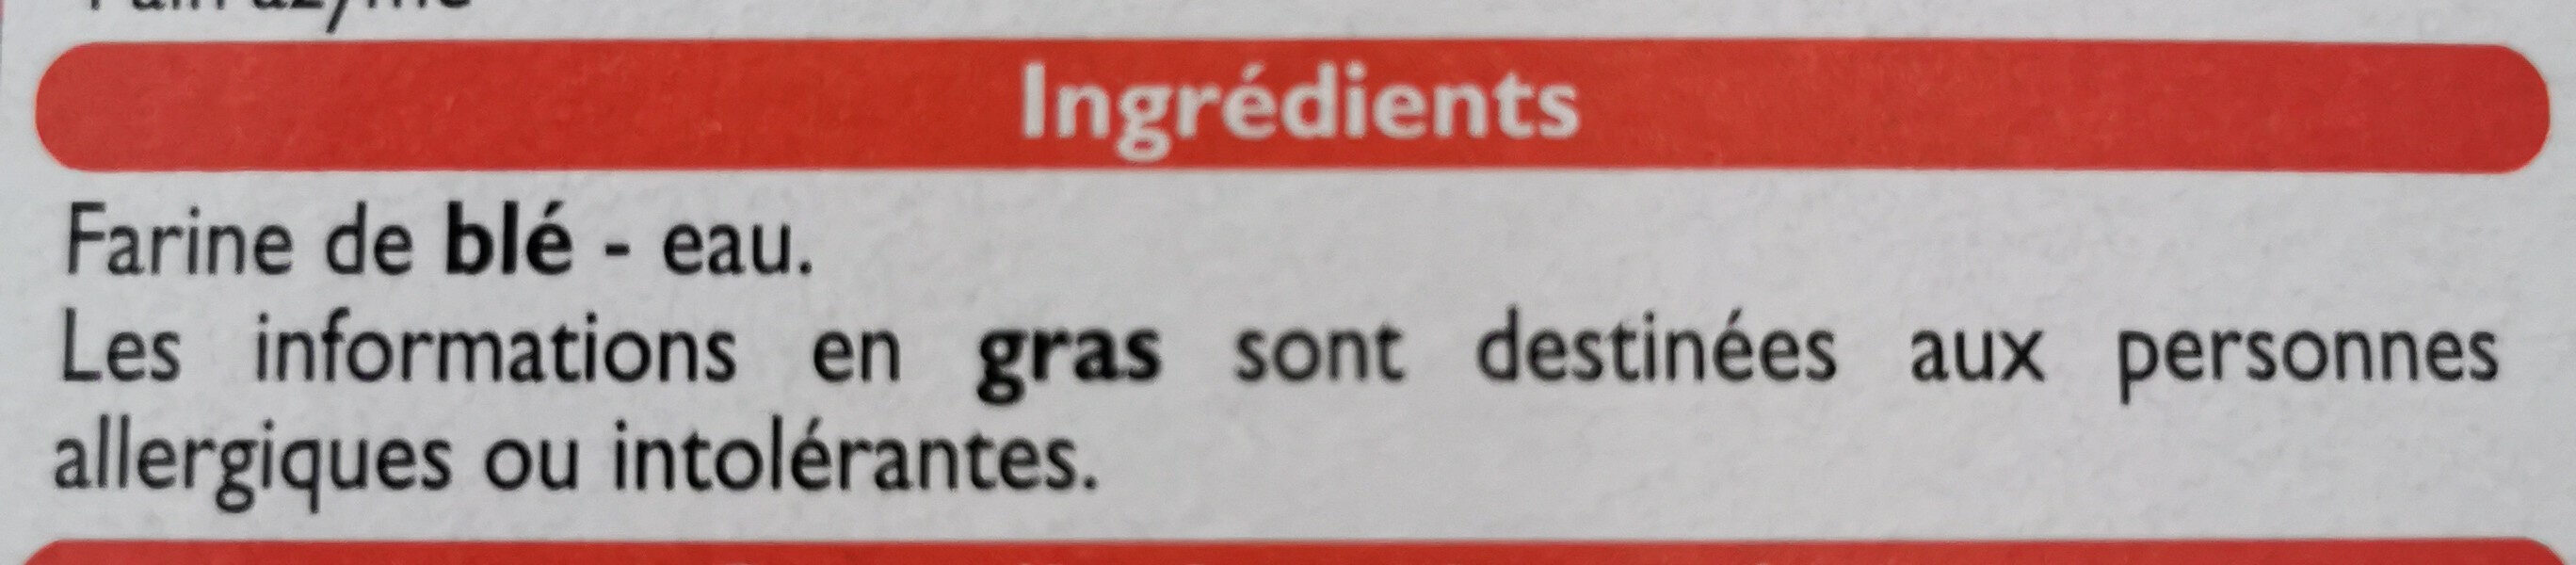 Pain azyme craquant - Ingredients - fr